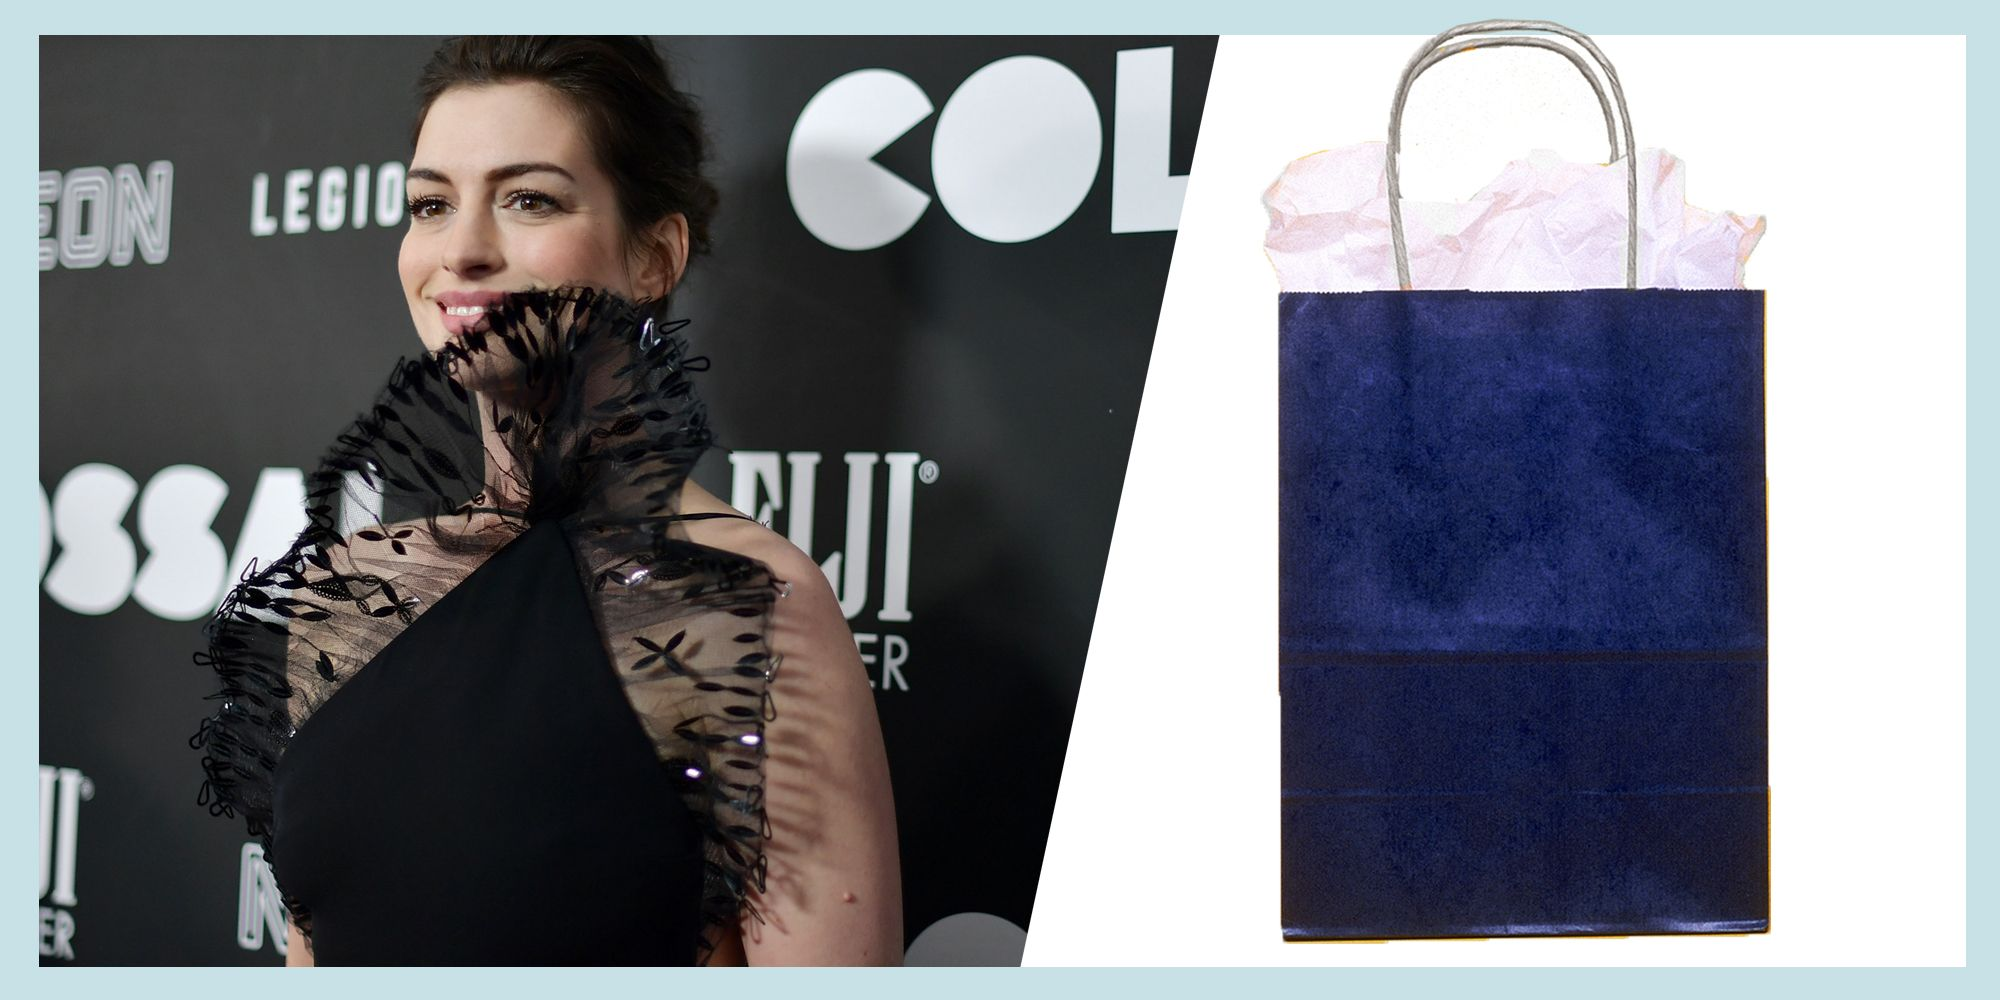 "<p>Most recently, Anne Hathaway attended the New York premiere of <em data-verified=""redactor"" data-redactor-tag=""em"">Colossal</em><span class=""redactor-invisible-space"" data-verified=""redactor"" data-redactor-tag=""span"" data-redactor-class=""redactor-invisible-space""> <span class=""redactor-invisible-space"" data-verified=""redactor"" data-redactor-tag=""span"" data-redactor-class=""redactor-invisible-space"">in vintage Armani</span><em data-verified=""redactor"" data-redactor-tag=""em"">. </em></span>Or was it Anne Hathaway? No one can really be sure with that lace frill hiding her chin, much like a tuft of tissue paper sticking out of a kid's birthday present. </p>"